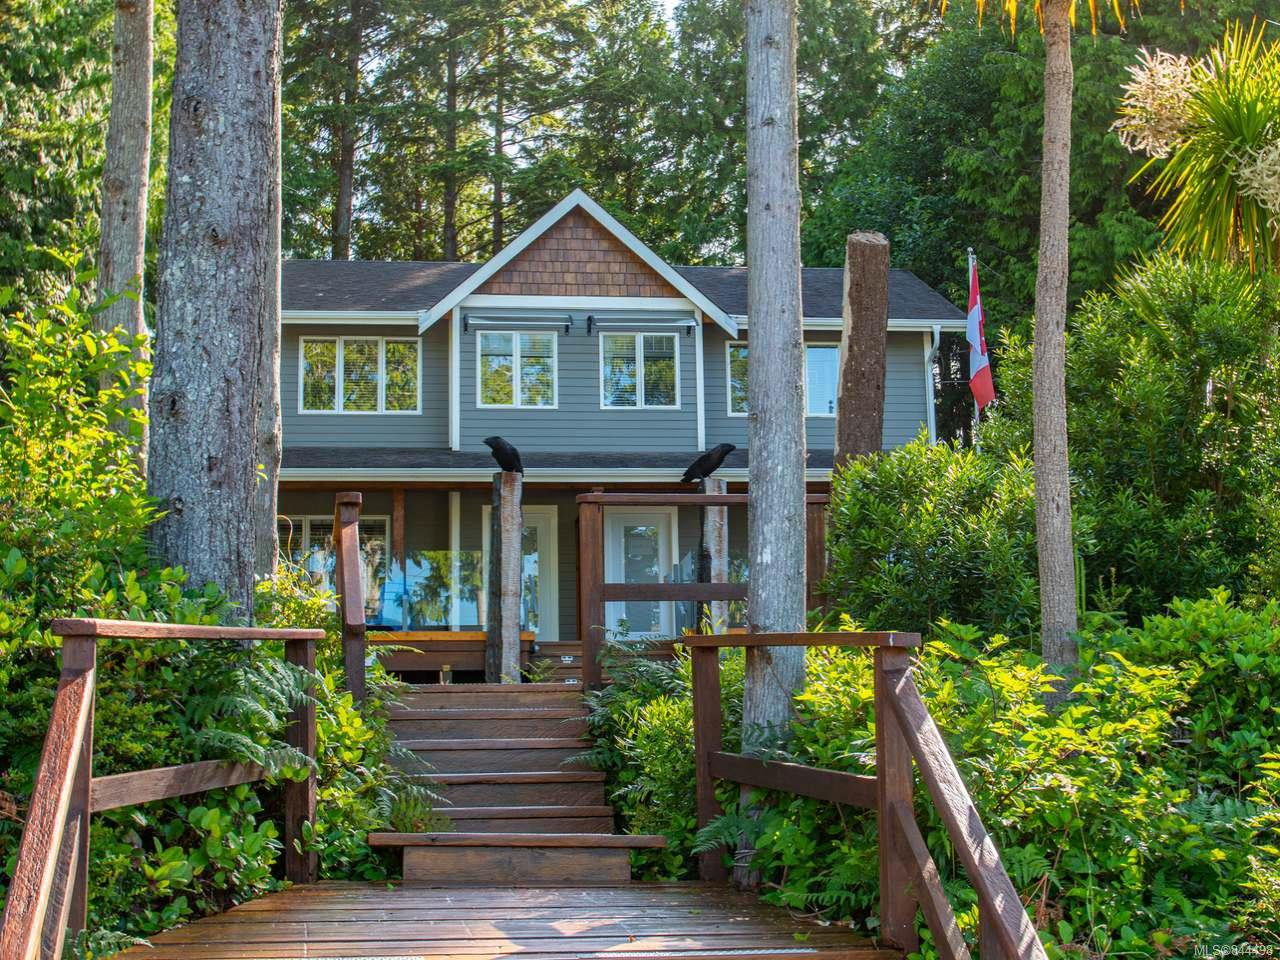 Main Photo: 1536 Peninsula Rd in UCLUELET: PA Ucluelet Business for sale (Port Alberni)  : MLS®# 844498